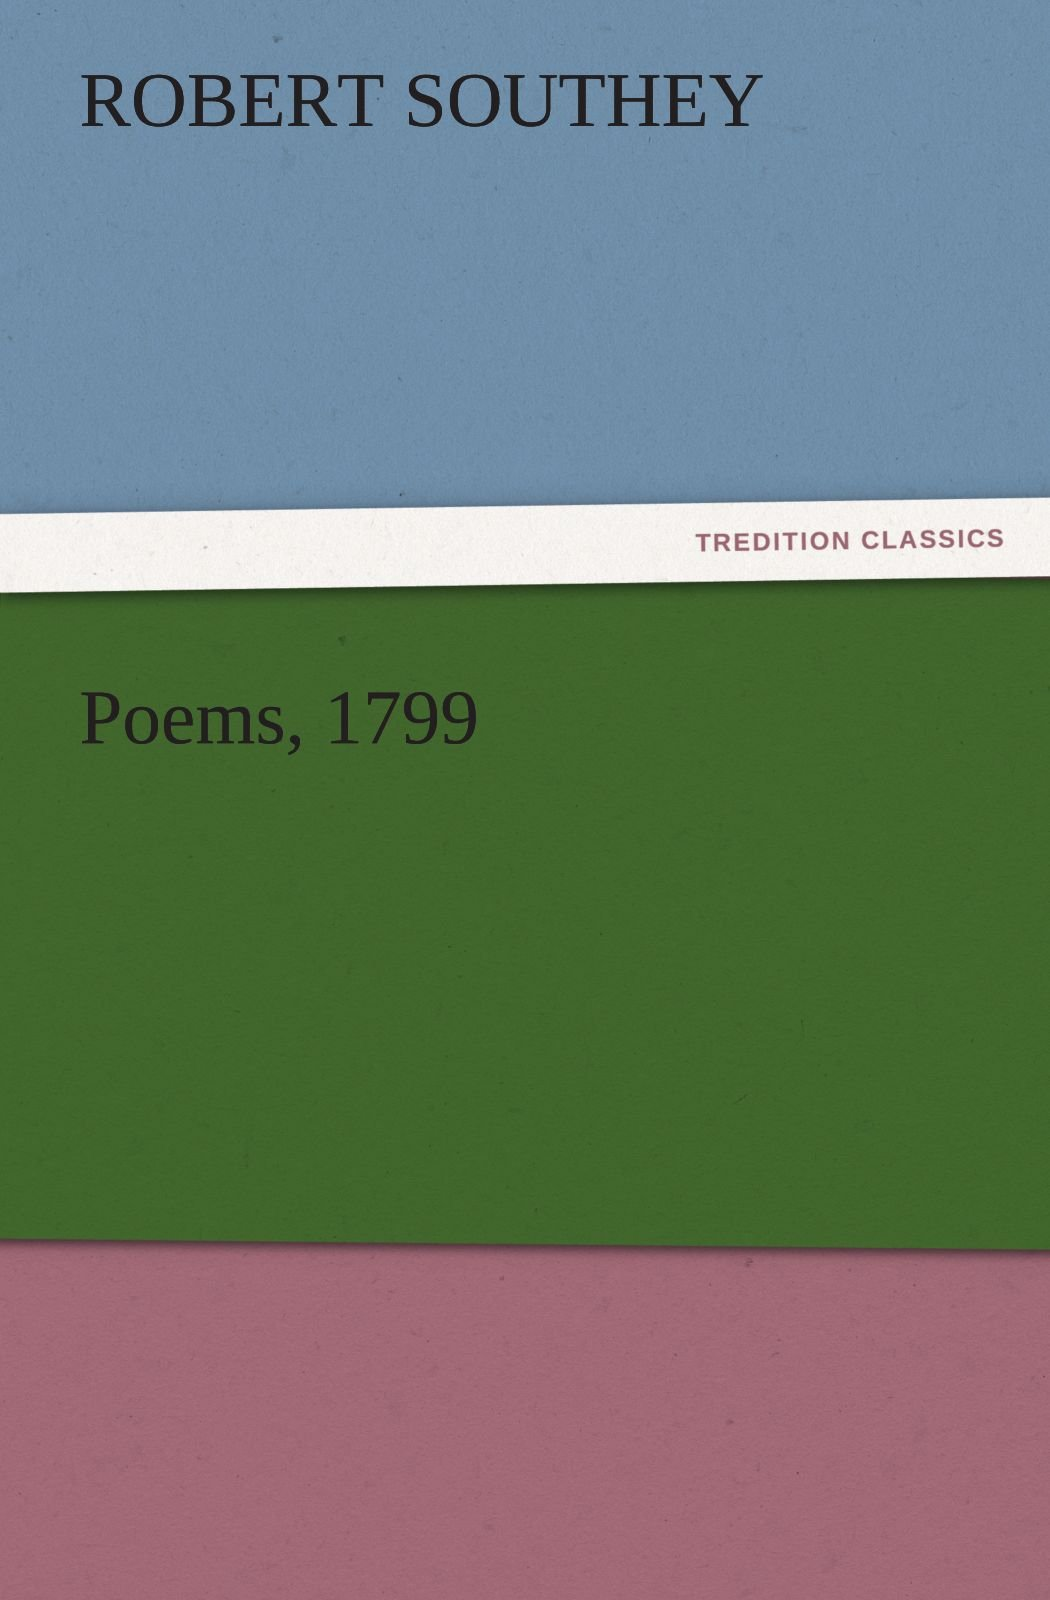 Download Poems, 1799 (TREDITION CLASSICS) pdf